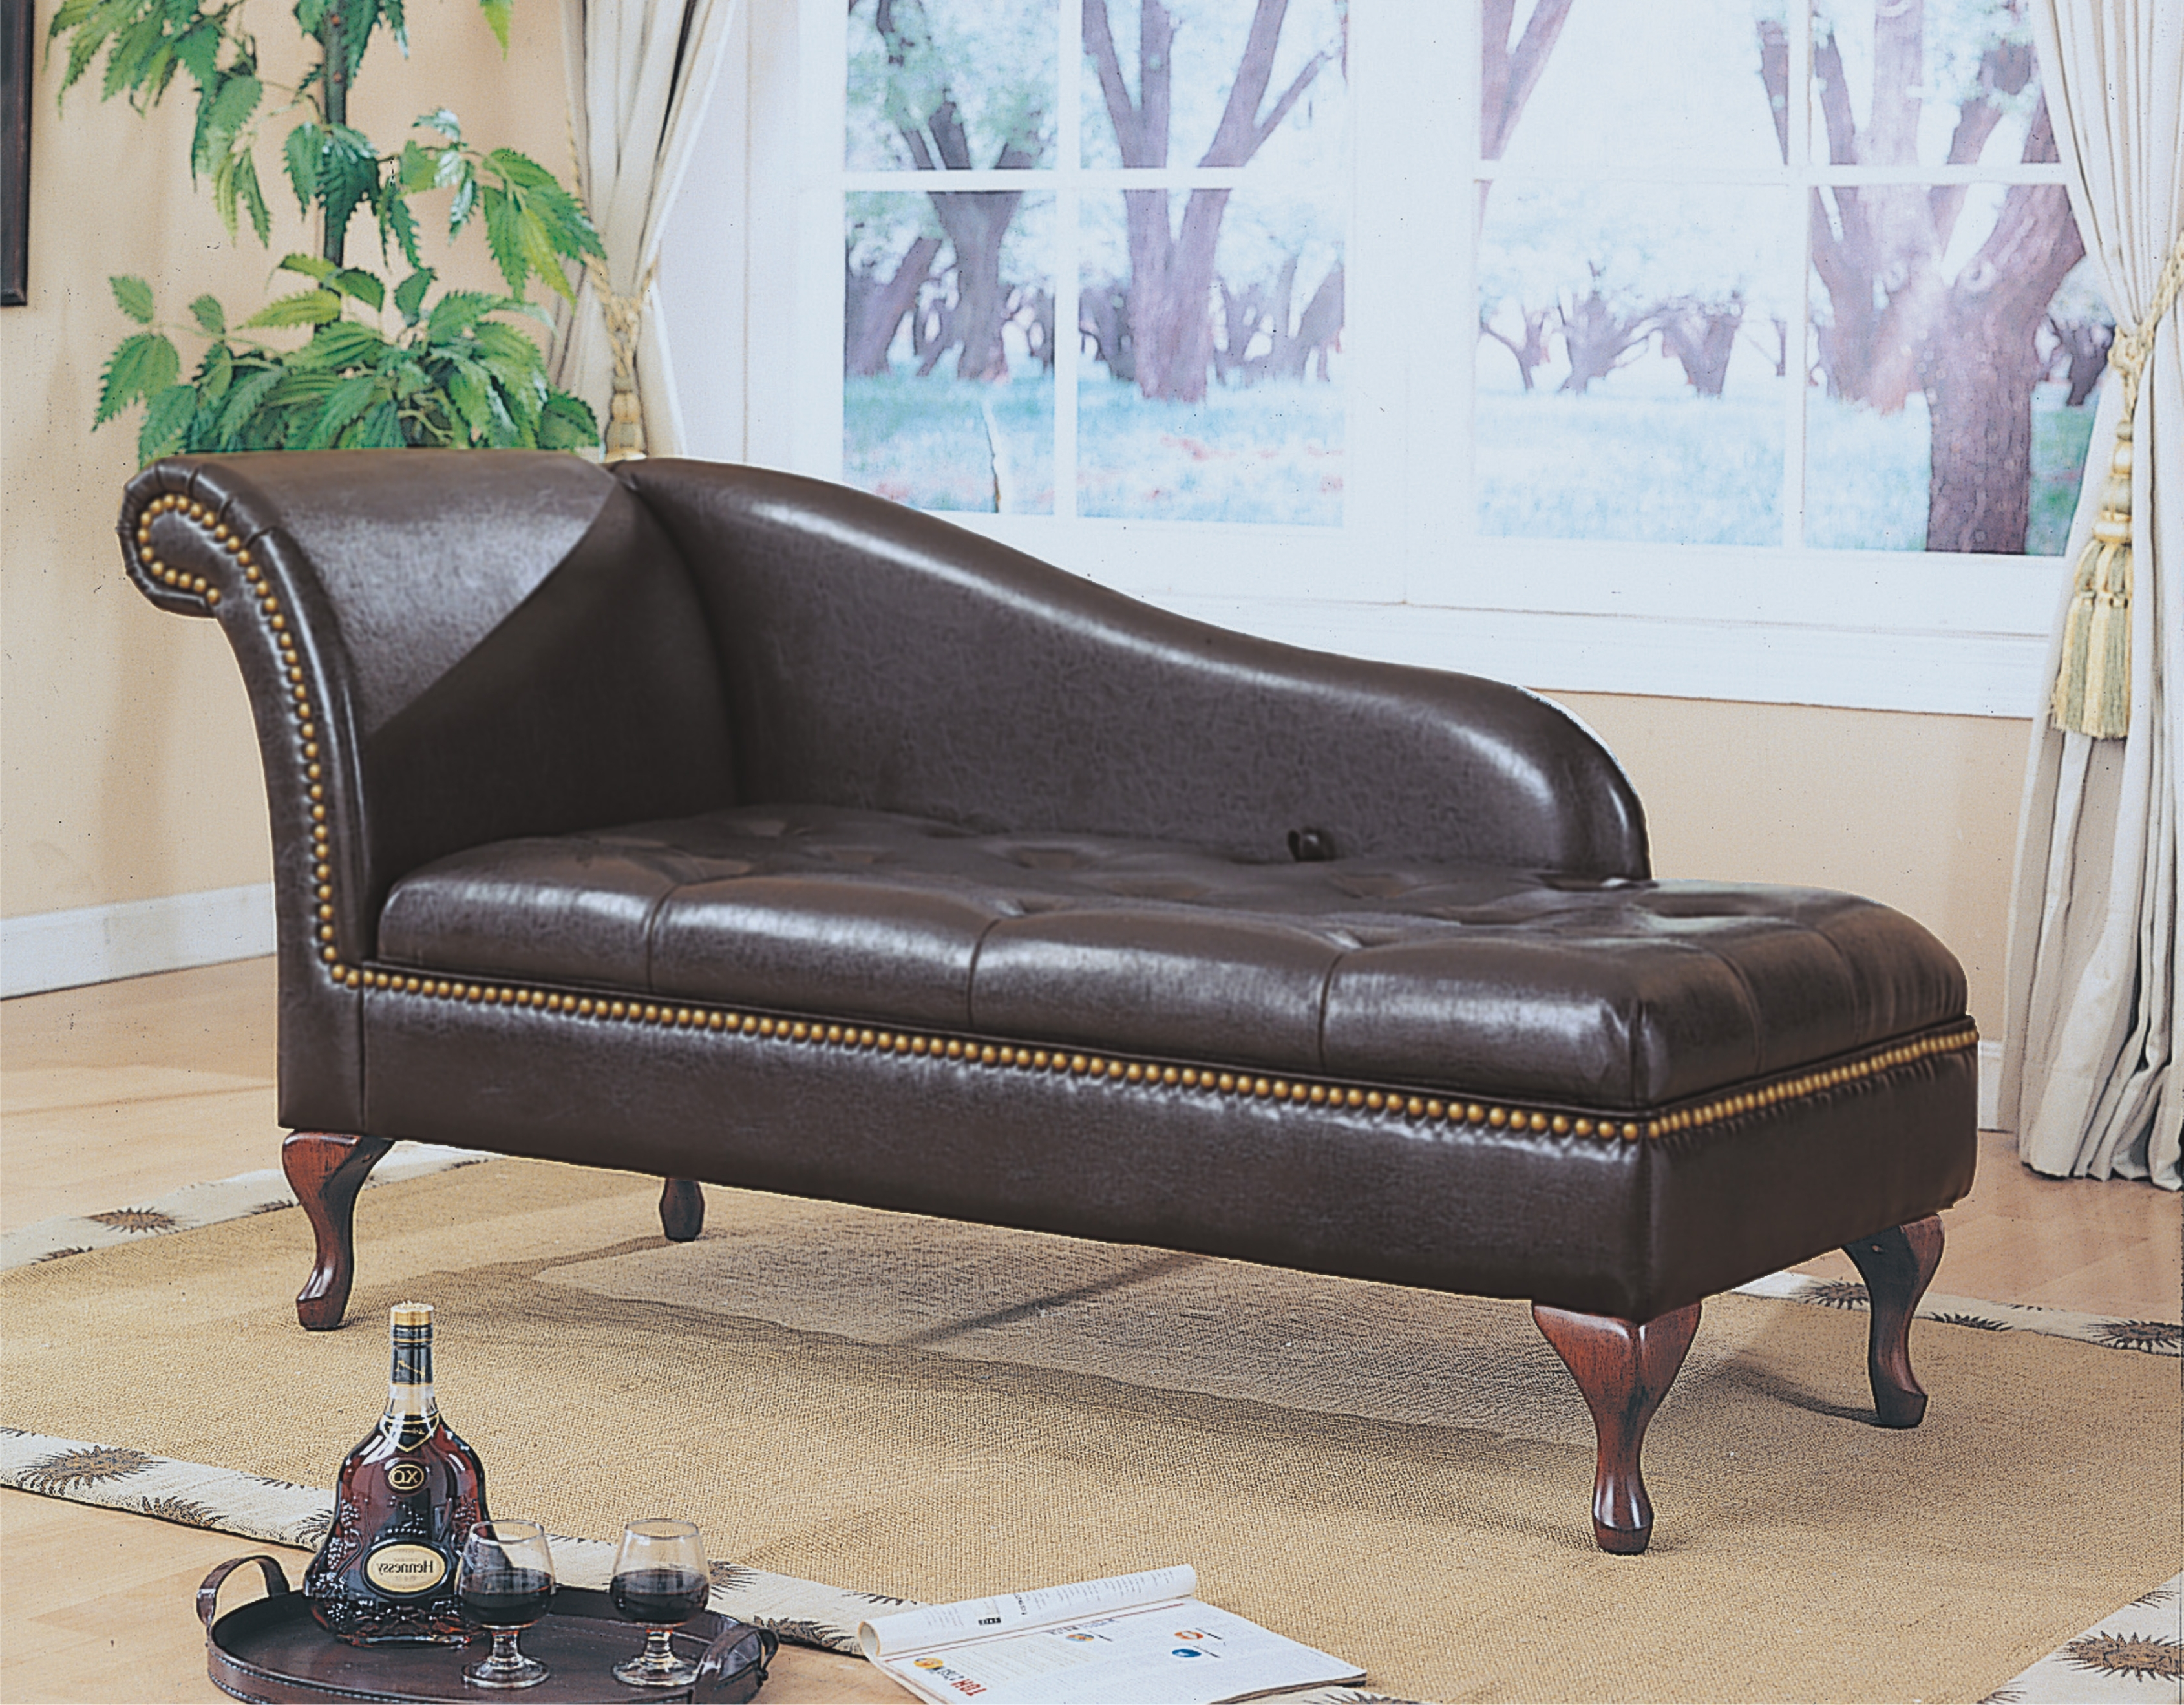 Newest Furniture: Alluring Leather Chaise With Unique Design — Agisee With Regard To Black Leather Chaise Lounge Chairs (View 9 of 15)